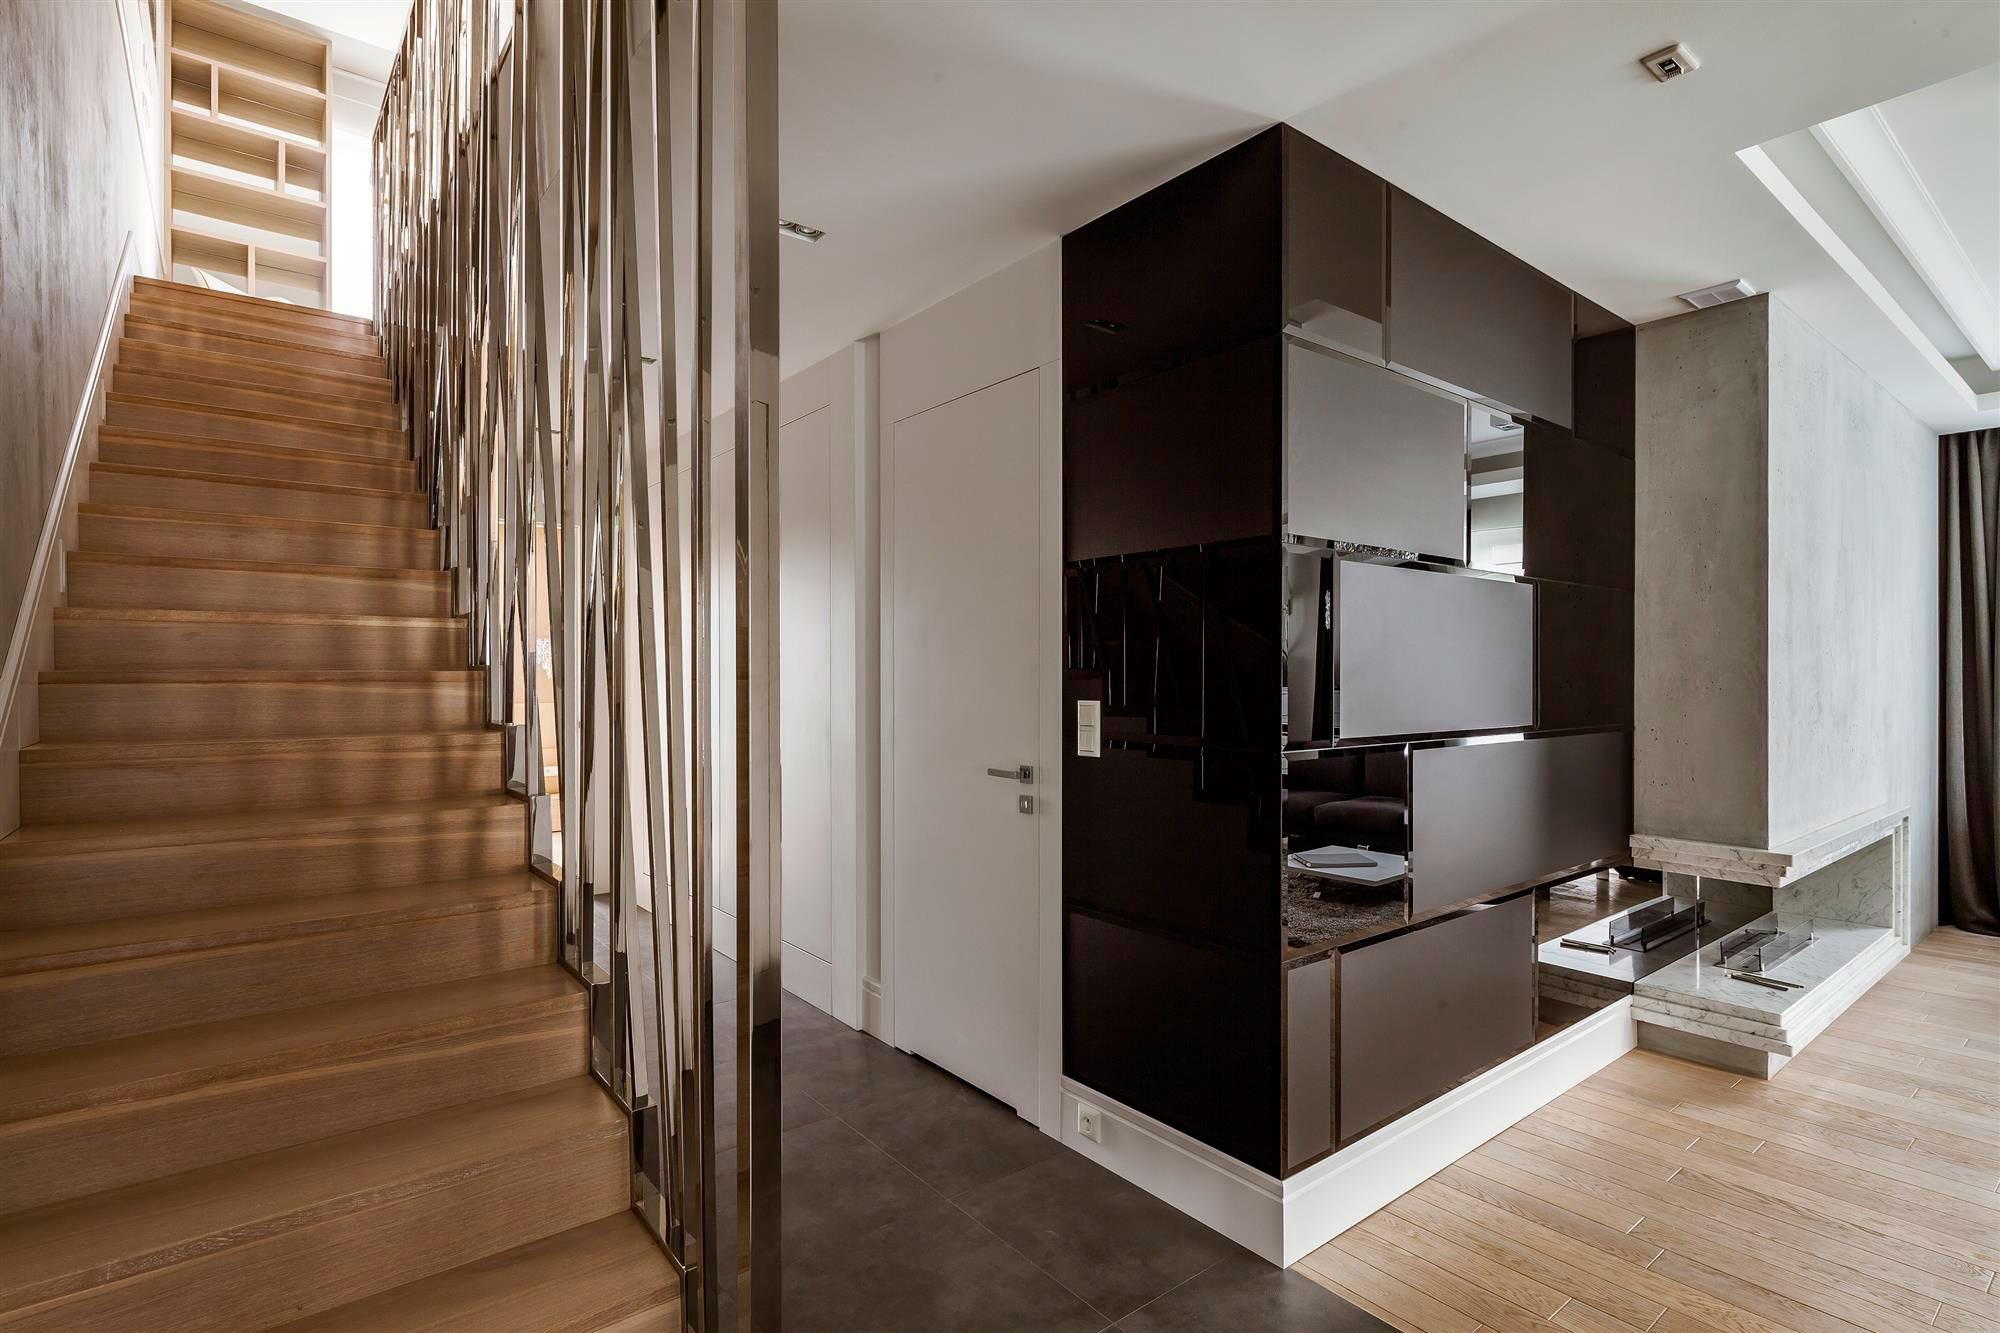 Apartment-in-Warsaw-11